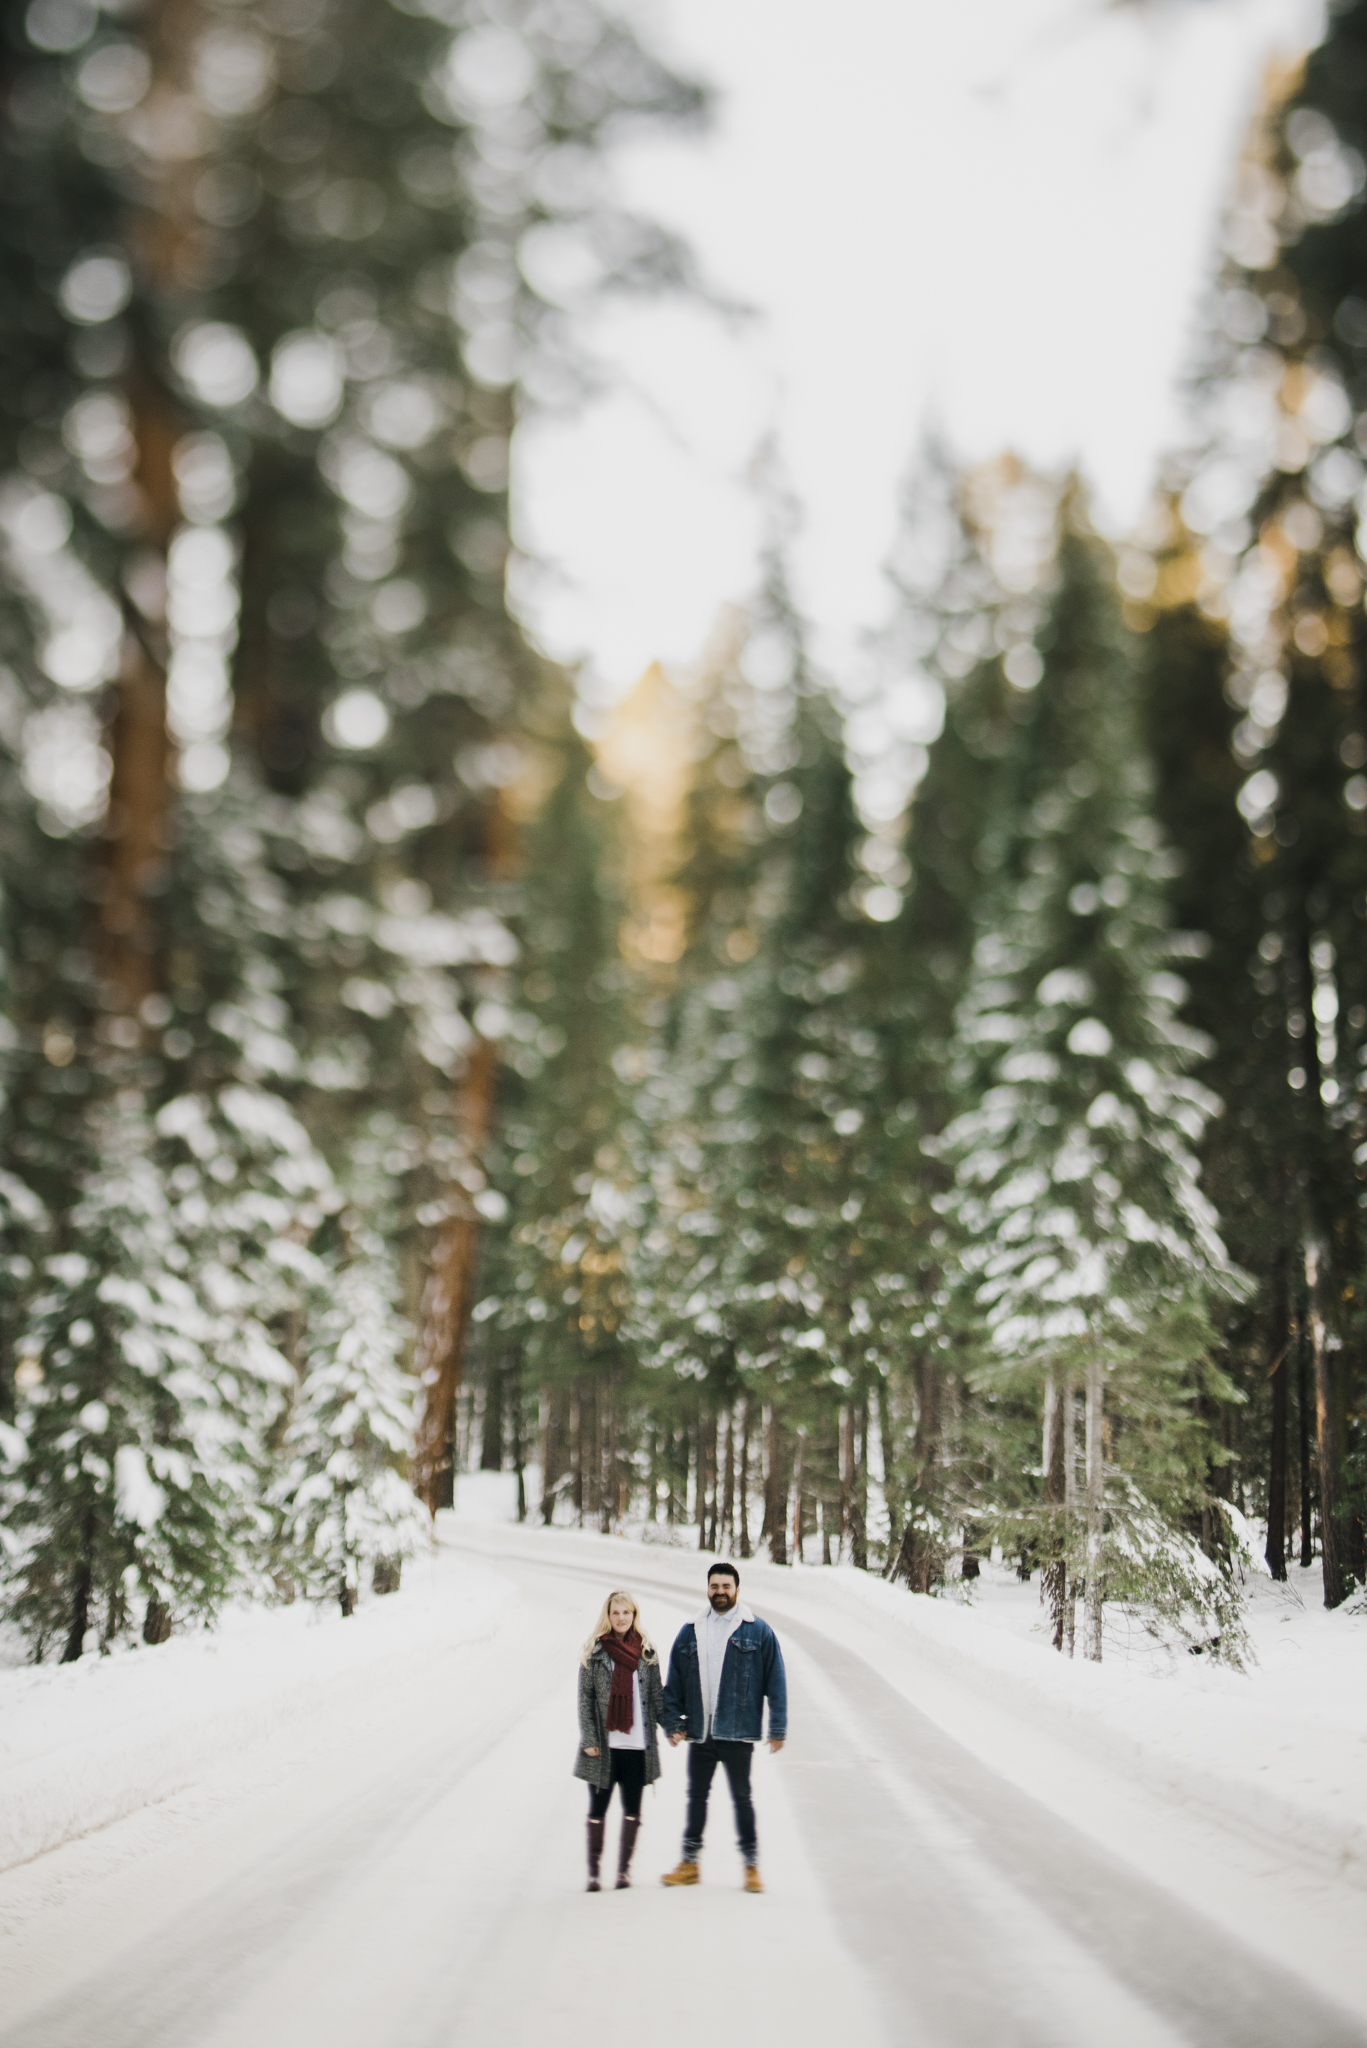 ©Isaiah-&-Taylor-Photography---George-&-Alyssa-Engagement---Sequoia-National-Park,-California-78.jpg